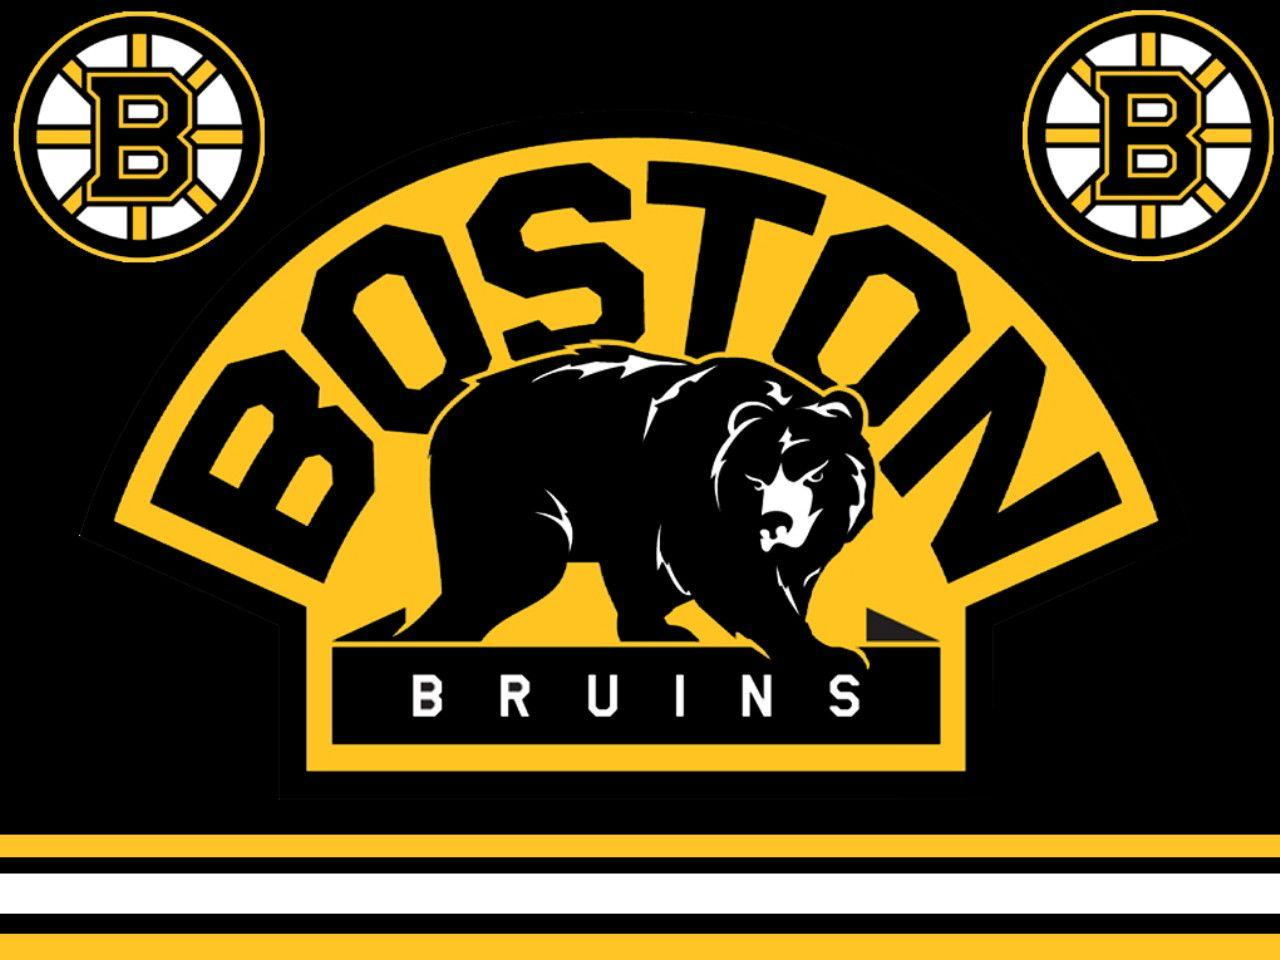 Boston Bruins HD background | Boston Bruins wallpapers